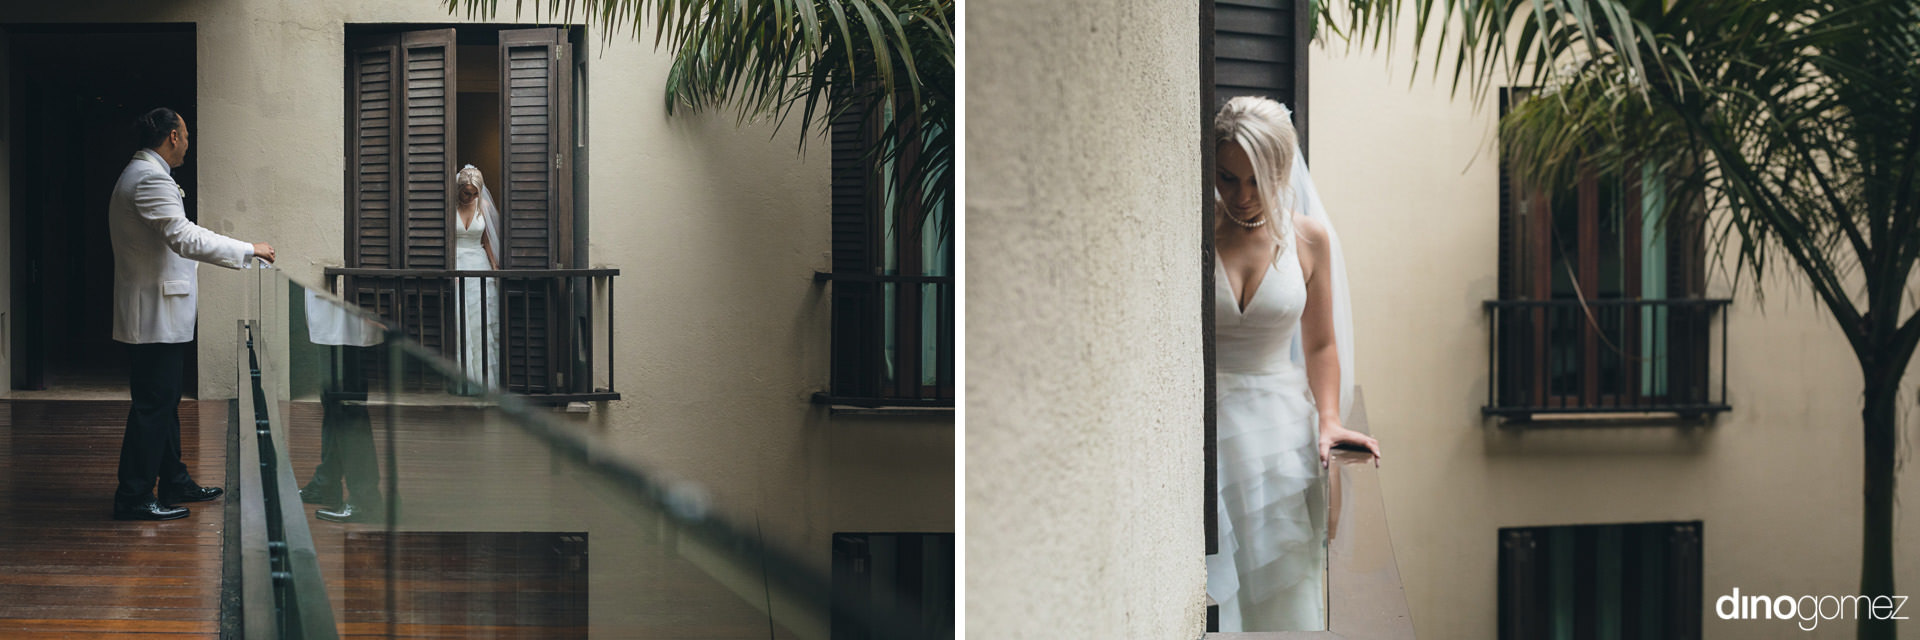 Luxury Wedding Photographers In Casa San Agustin Cartagena Colombia - St